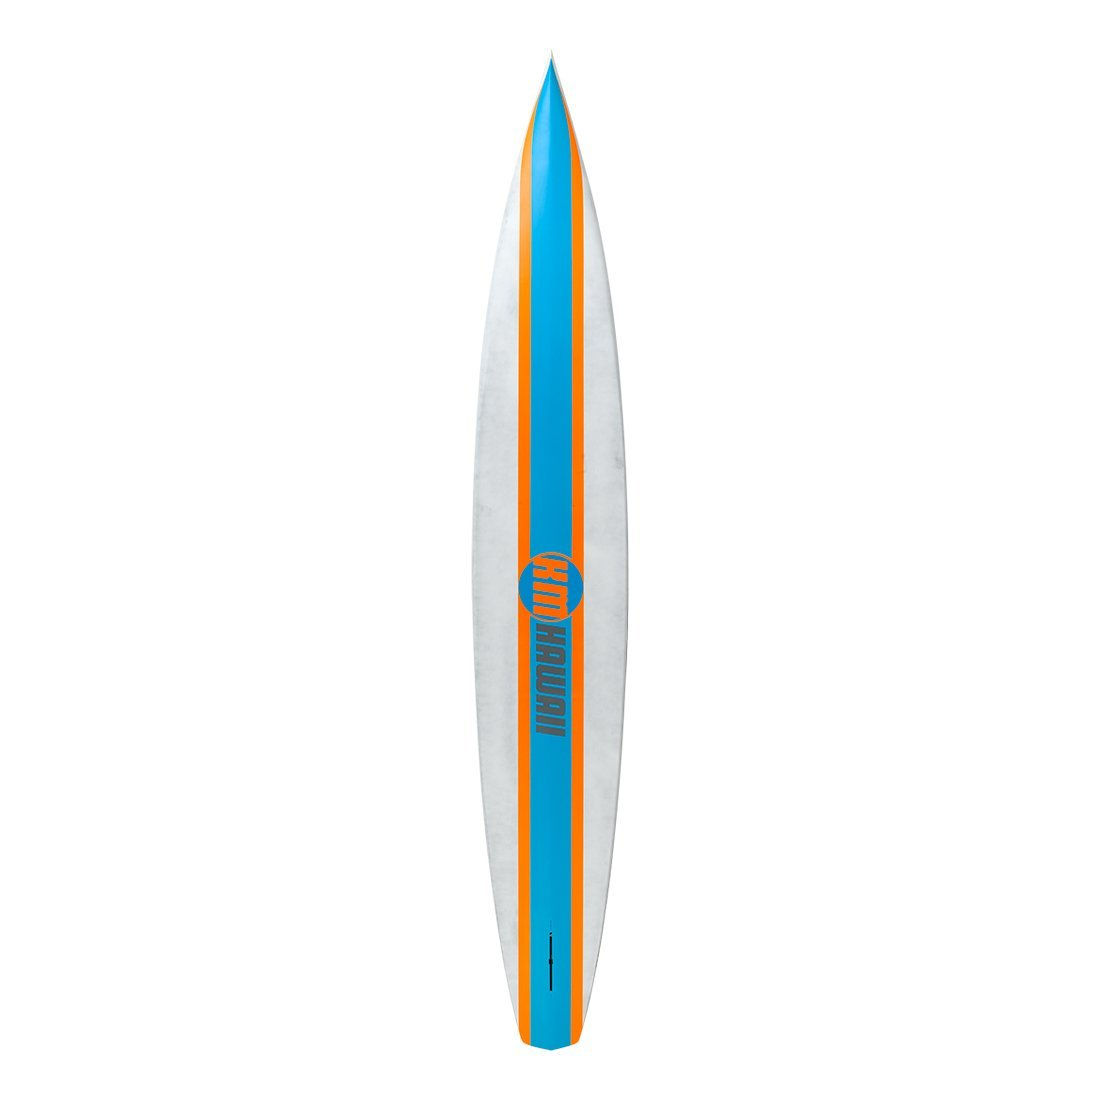 "KM Hawaii CompressorHP - Blue-Orange - 12'6"" x 24"" Carbon Fiber Performance Standup Paddle Board Paddle Boards 4theoutdoors America US USA SUP outdoors"